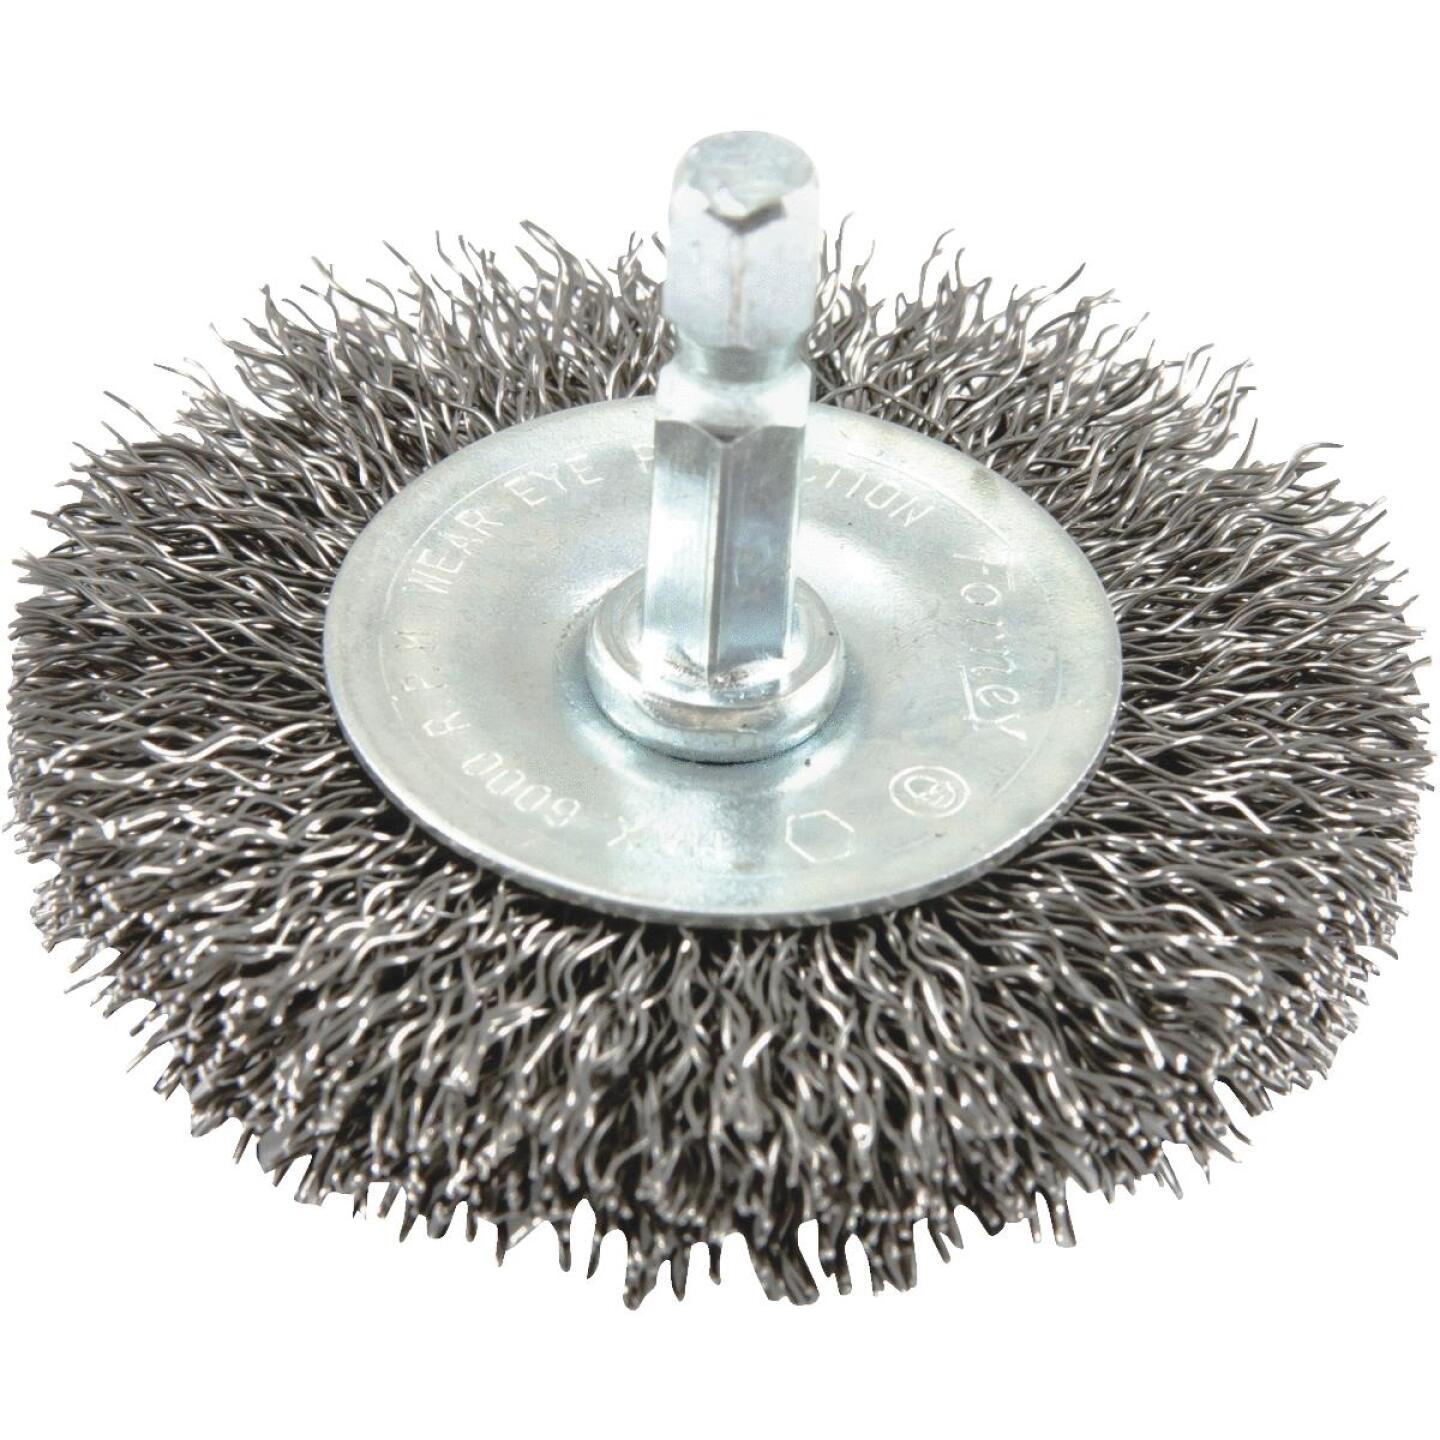 Forney 2-1/2 In. Hex Crimped, Coarse Drill-Mounted Wire Wheel Image 1